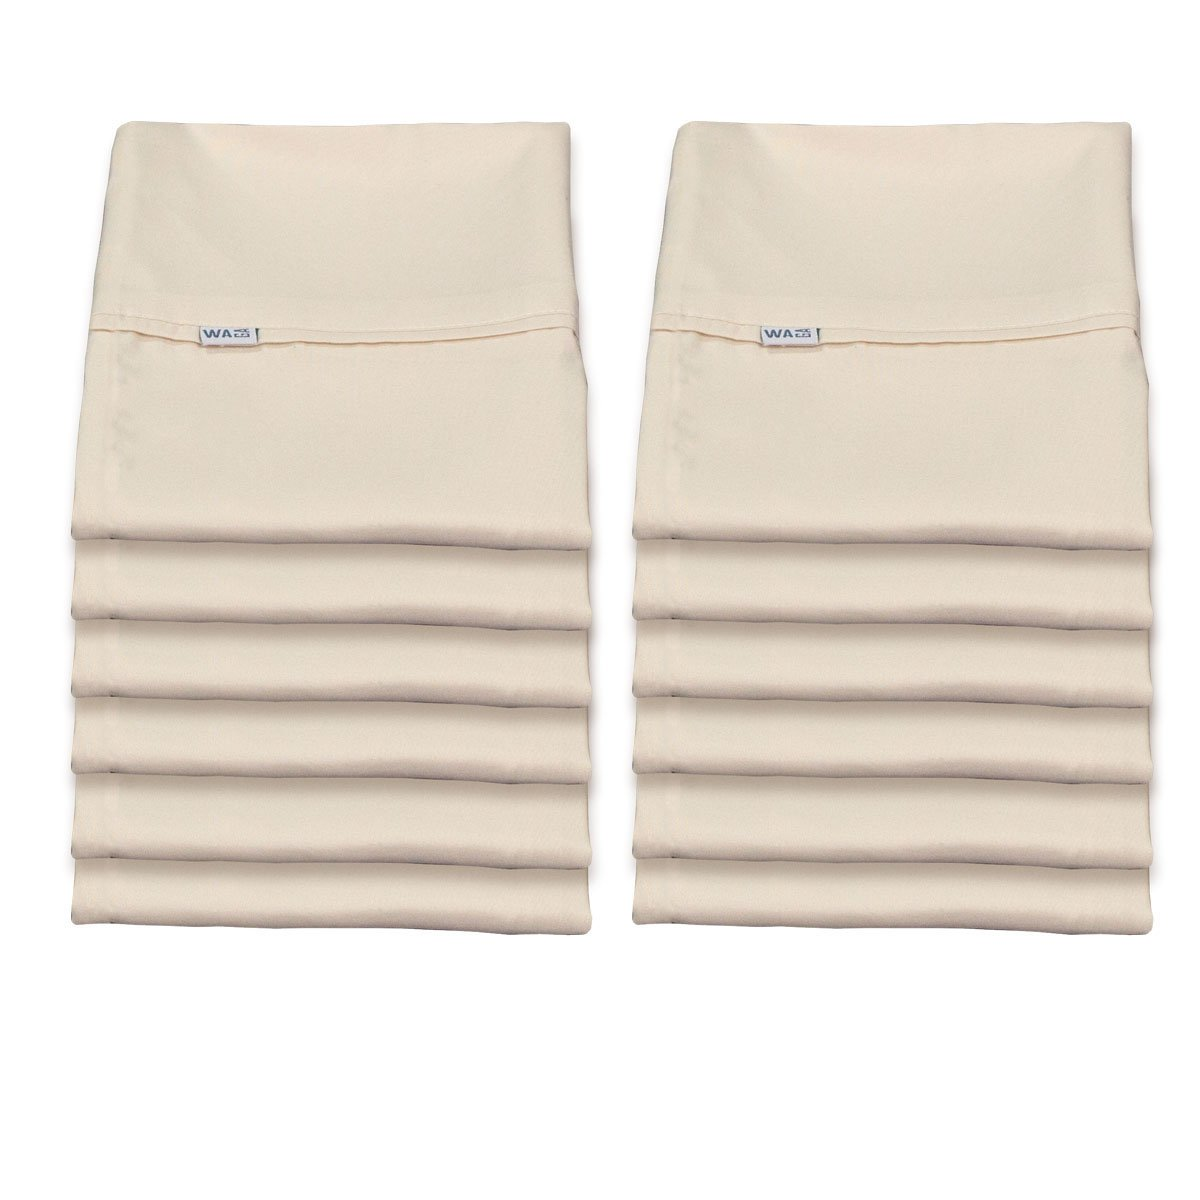 Pack of 12 Pillowcases with Piping - Hotel Collection - Microfiber - Light Beige, Standard (20 x 30) Waga